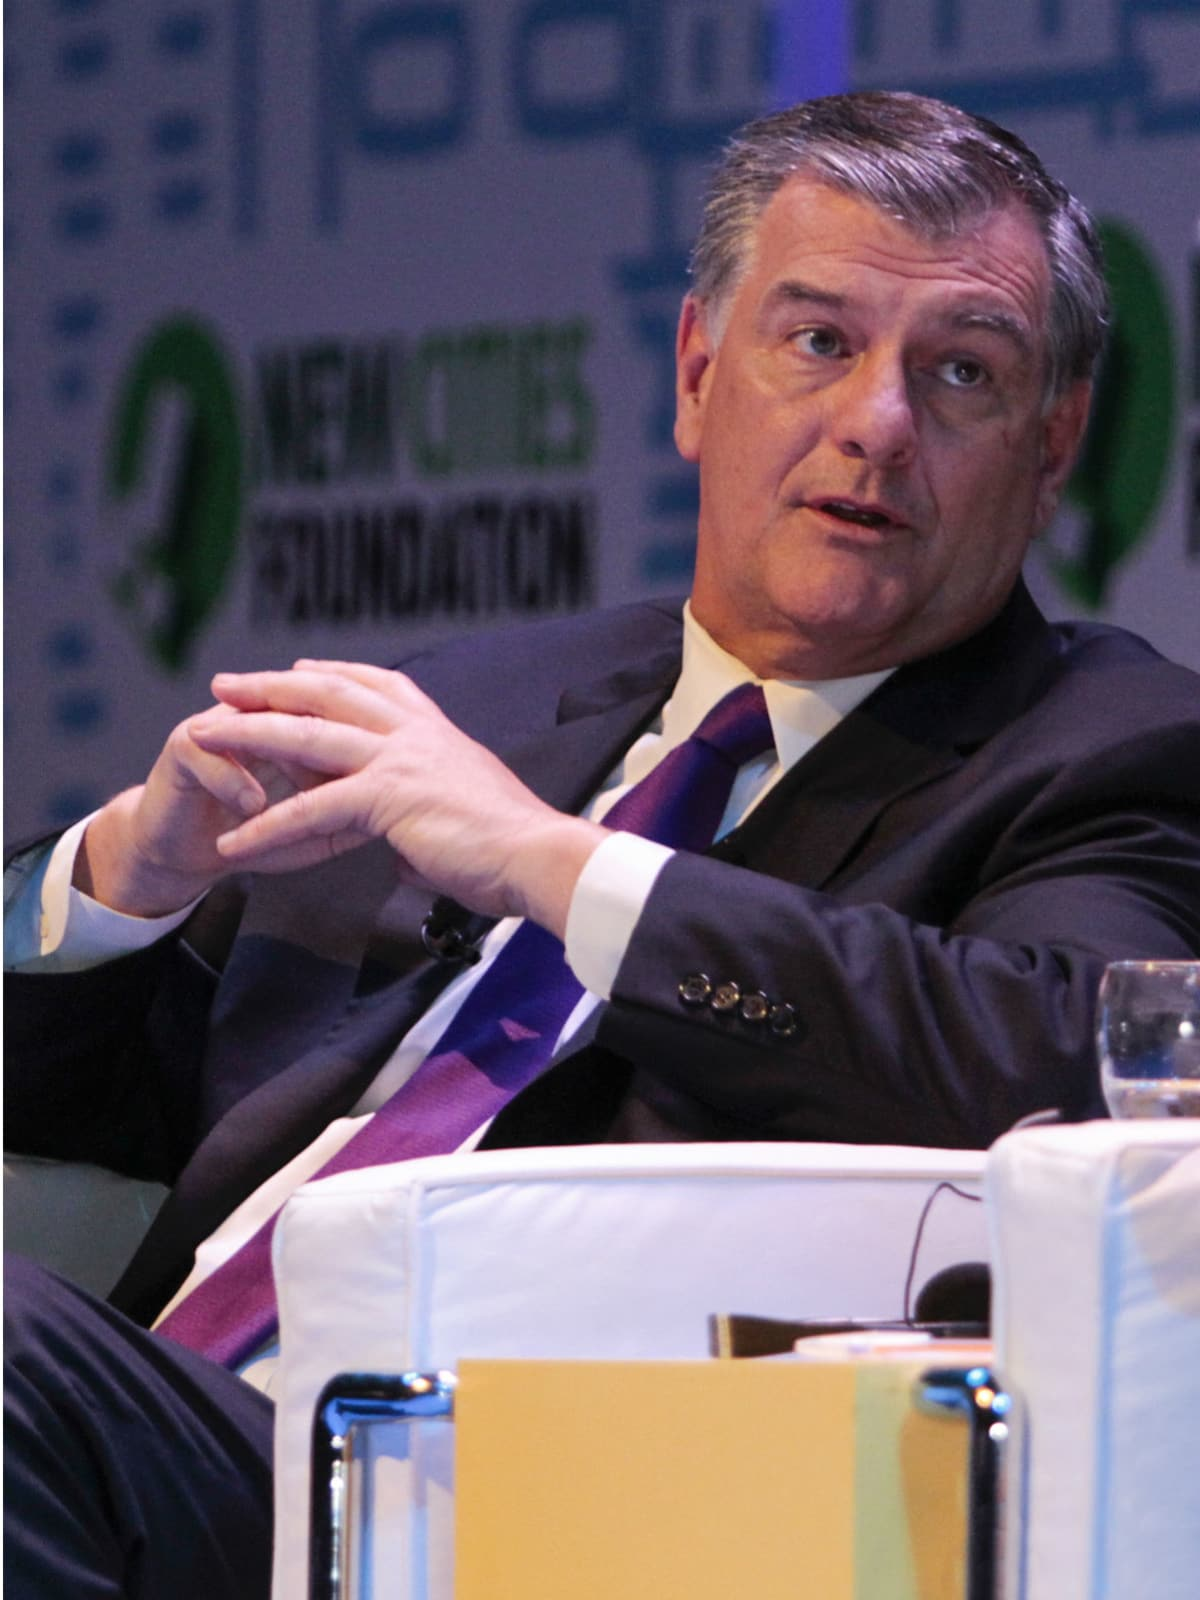 Dallas Mayor Mike Rawlings at 2013 New Cities Summit